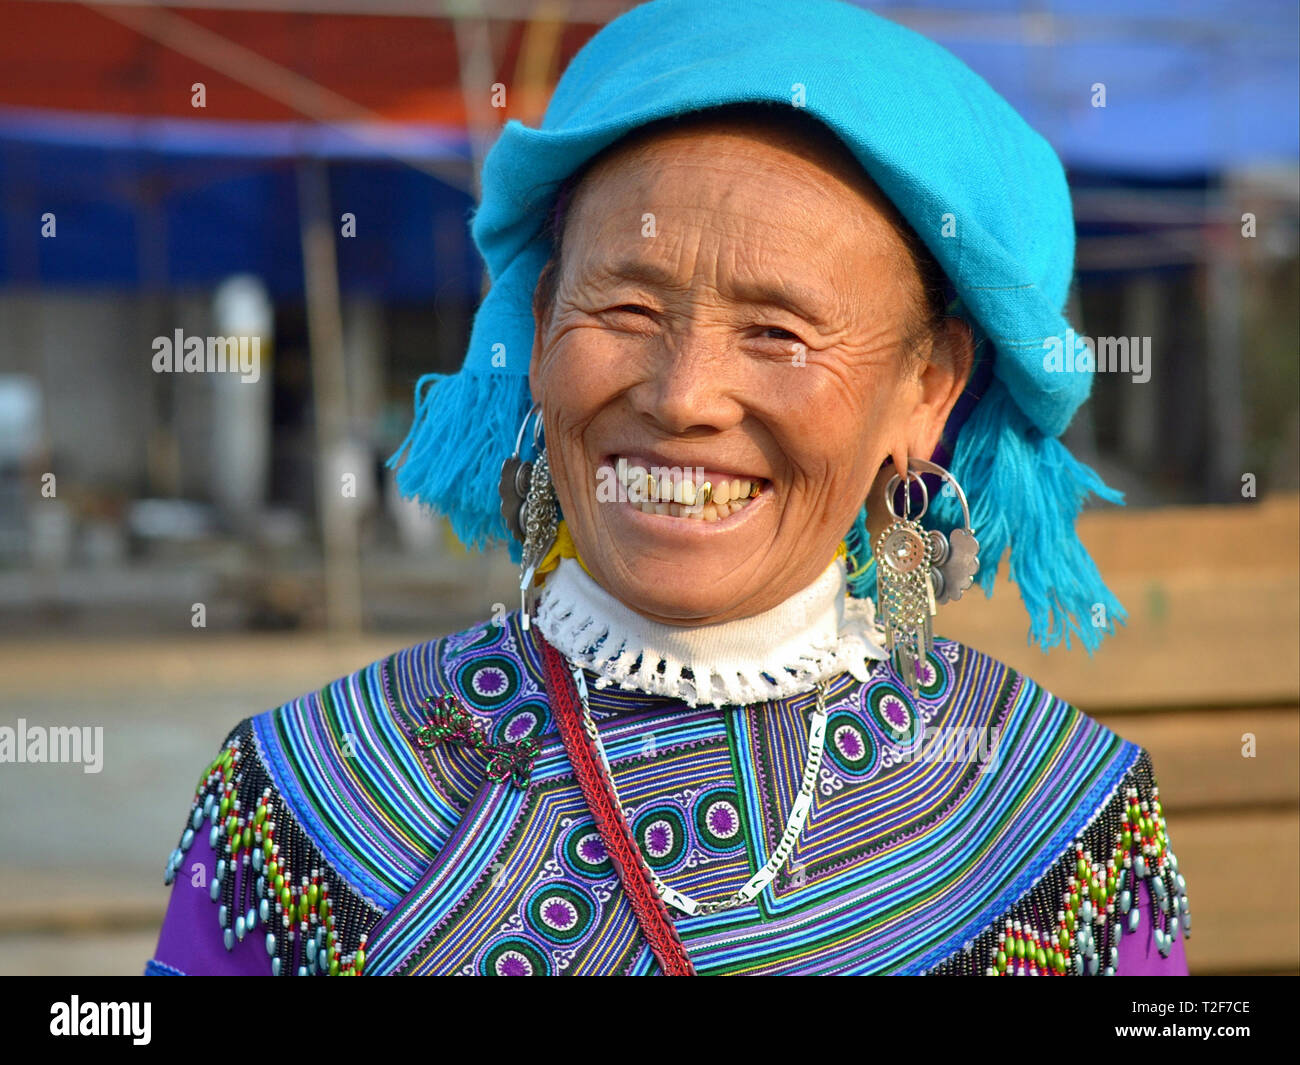 Elderly Vietnamese Blue H'mong hill-tribe woman with three gold teeth wears traditional H'mong embroidery in blue and smiles for the camera. - Stock Image